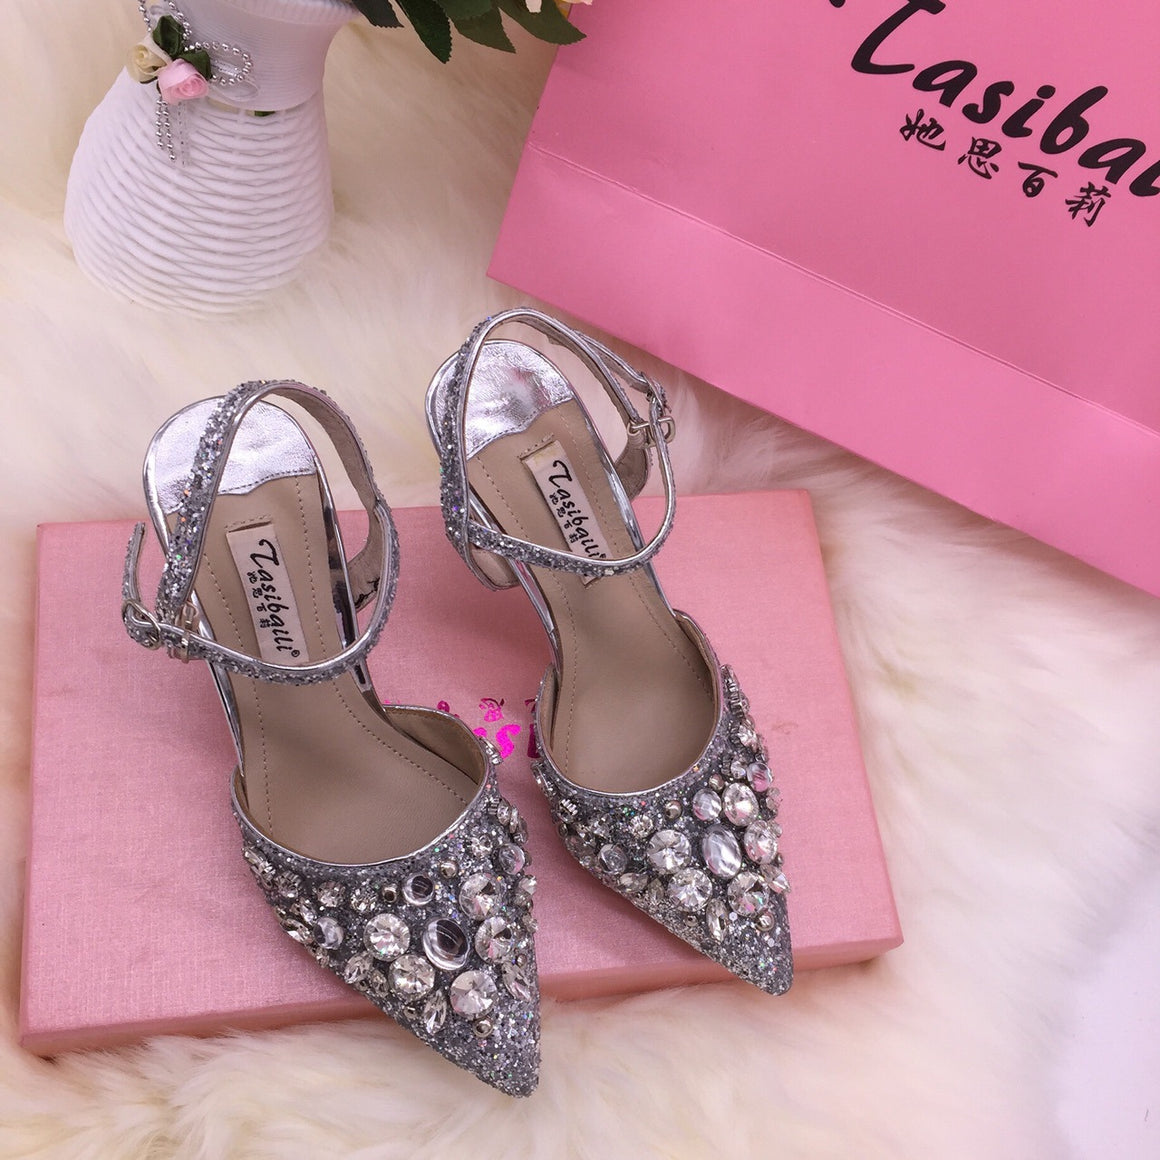 18 Summer crystal sequins pointed high-heeled laces buttoned back empty sandals fine-heeled crystal shoes silver wedding p0017Buy mate